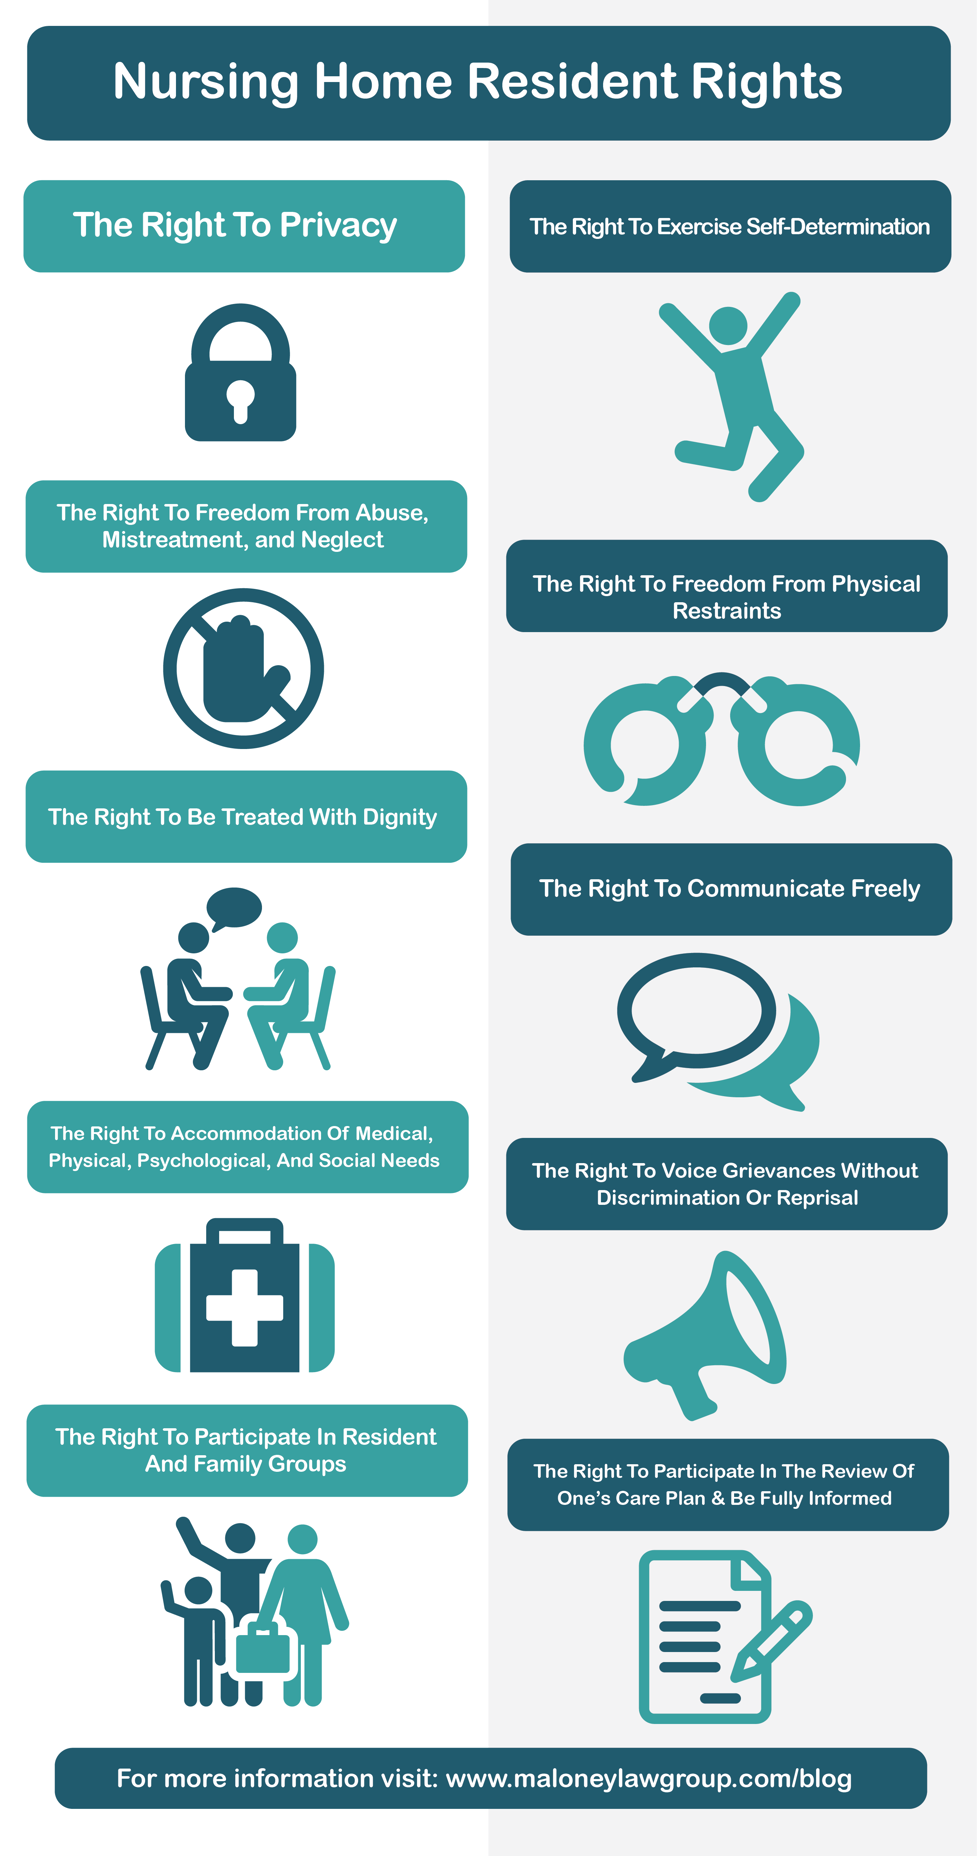 Nursing Home Resident Rights Infographic